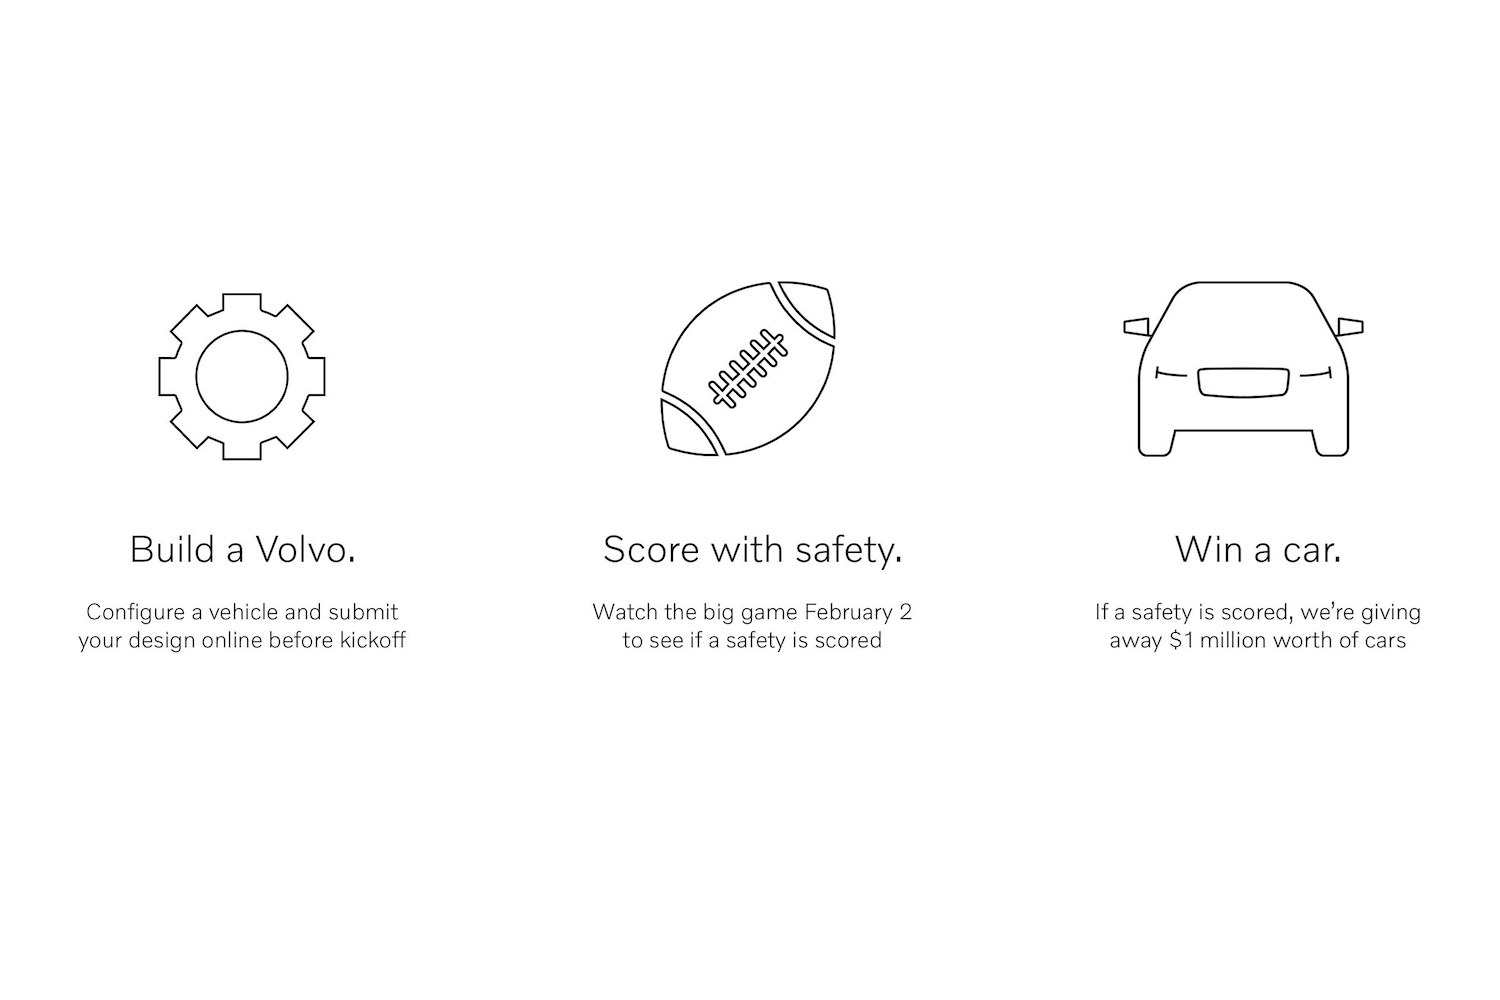 volvo in game safety sweepstakes graphic